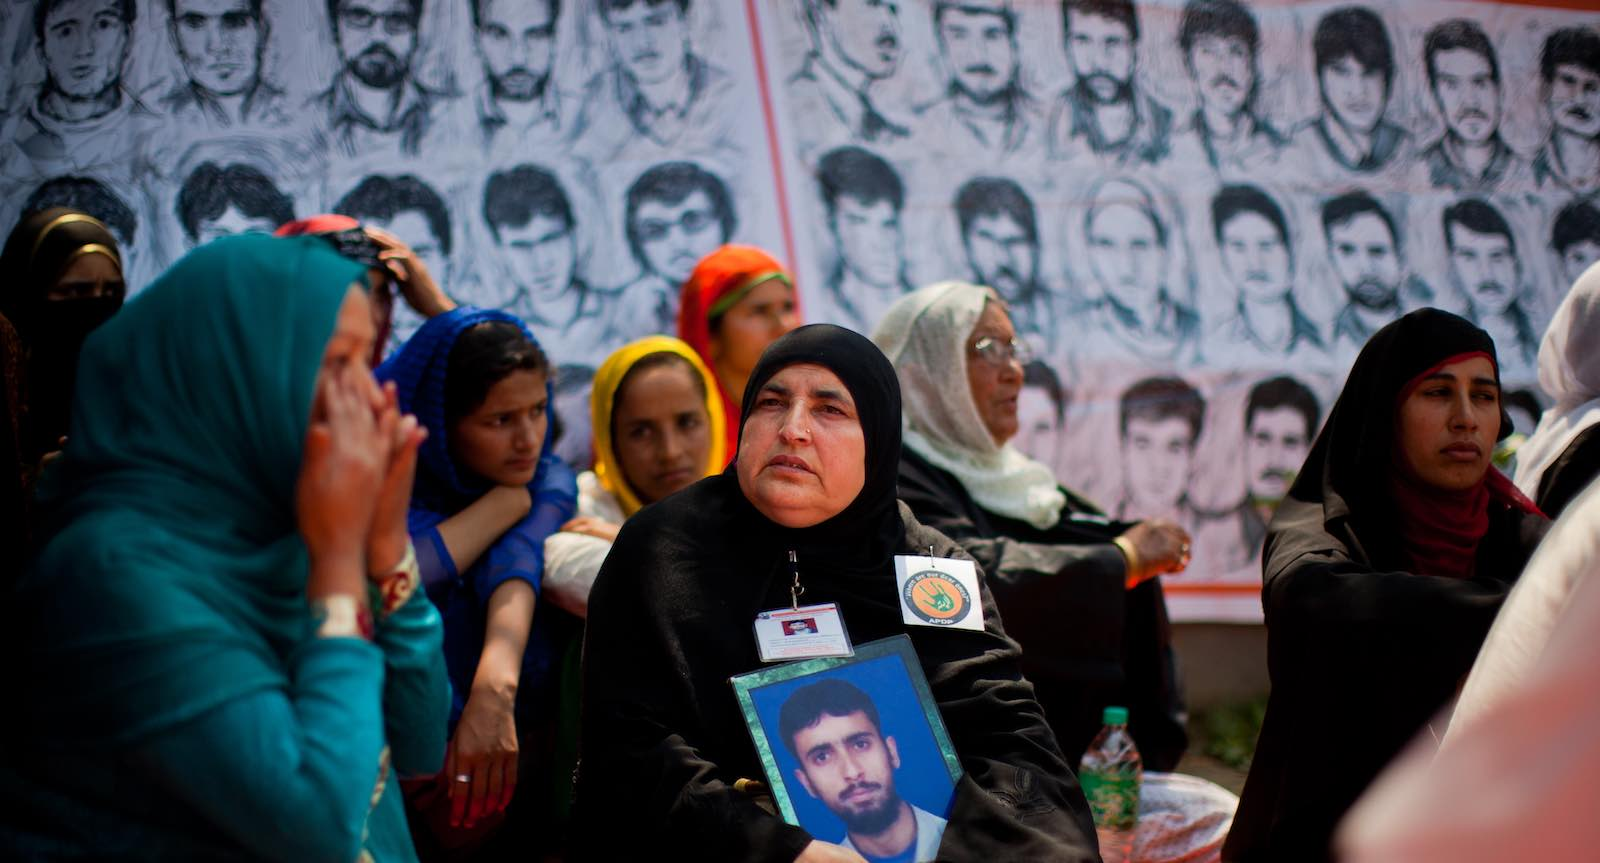 """Relatives of the """"disappeared"""" demonstrate in 2015 in Srinagar, Kashmir (Photo: Yawar Nazir/Getty)"""